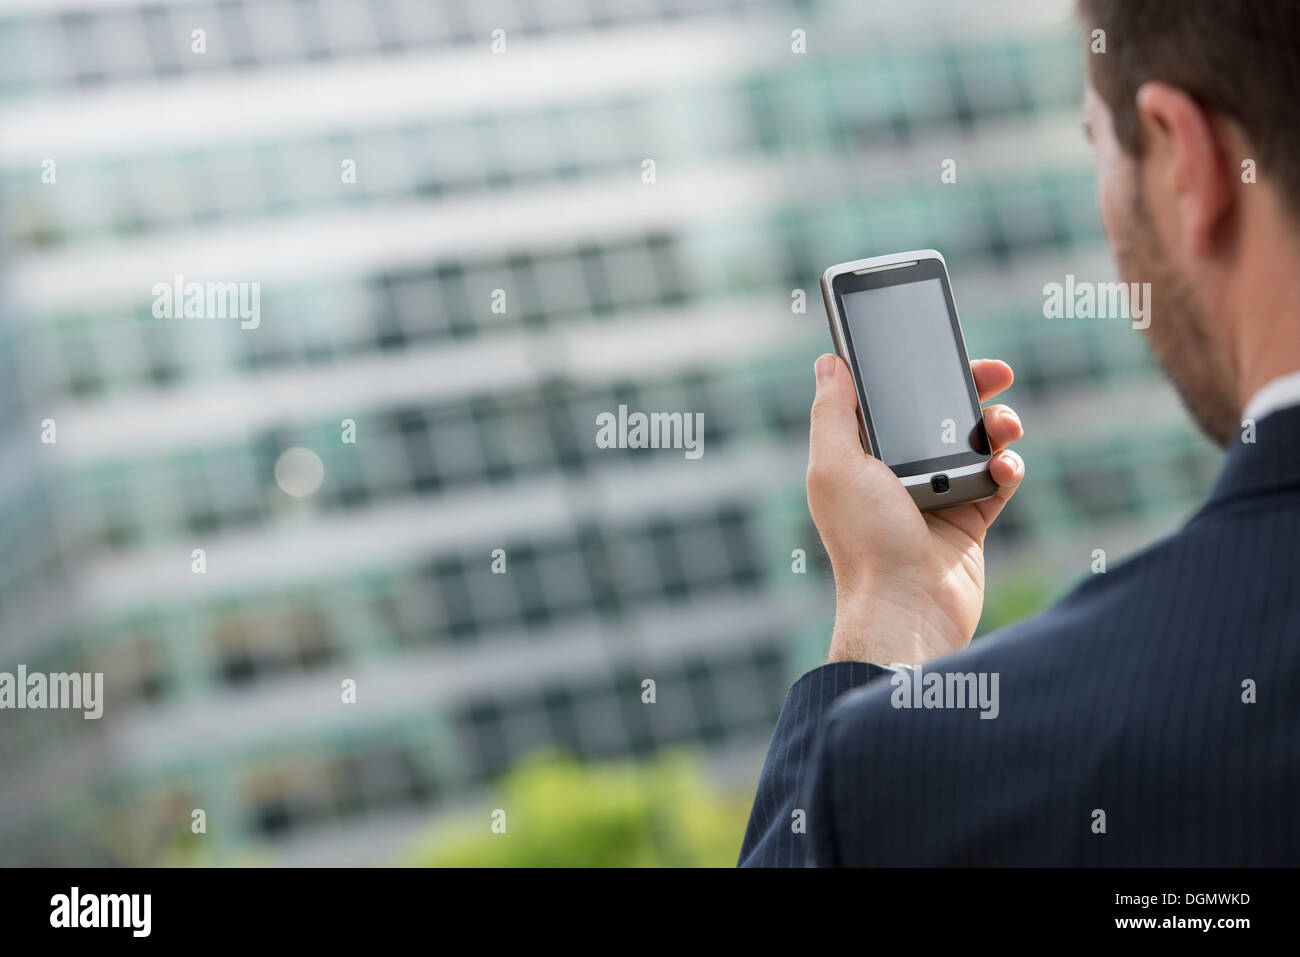 City. A man in a business suit checking his messages on his smart phone. - Stock Image